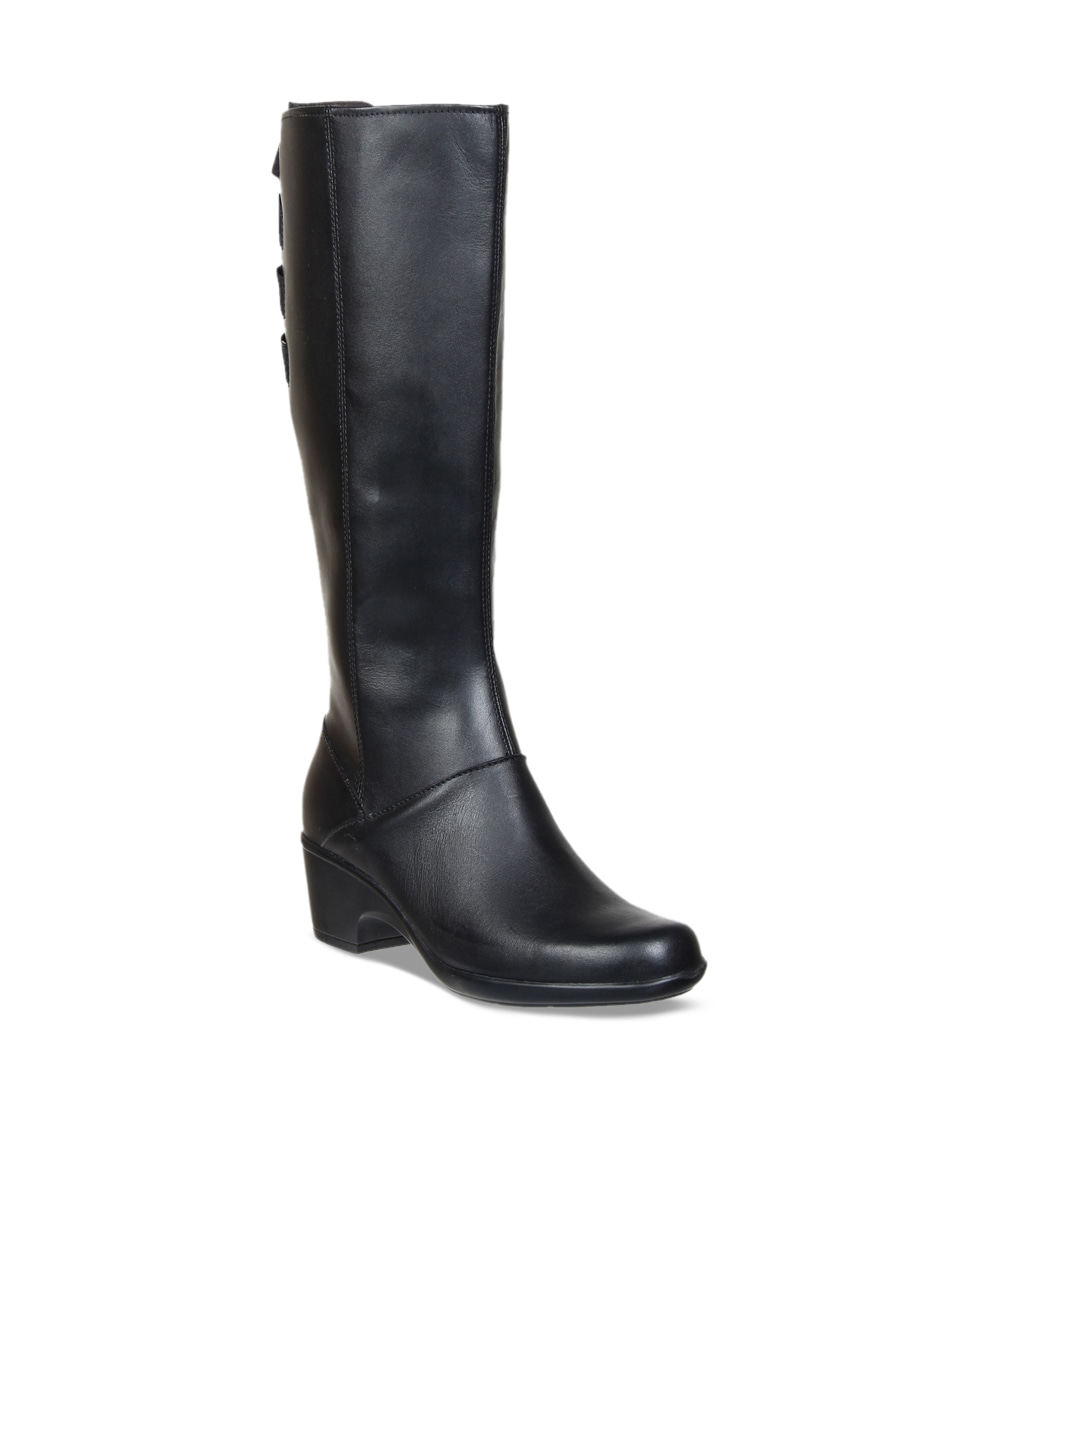 Clarks Women Black Leather High Top Heeled Boots image